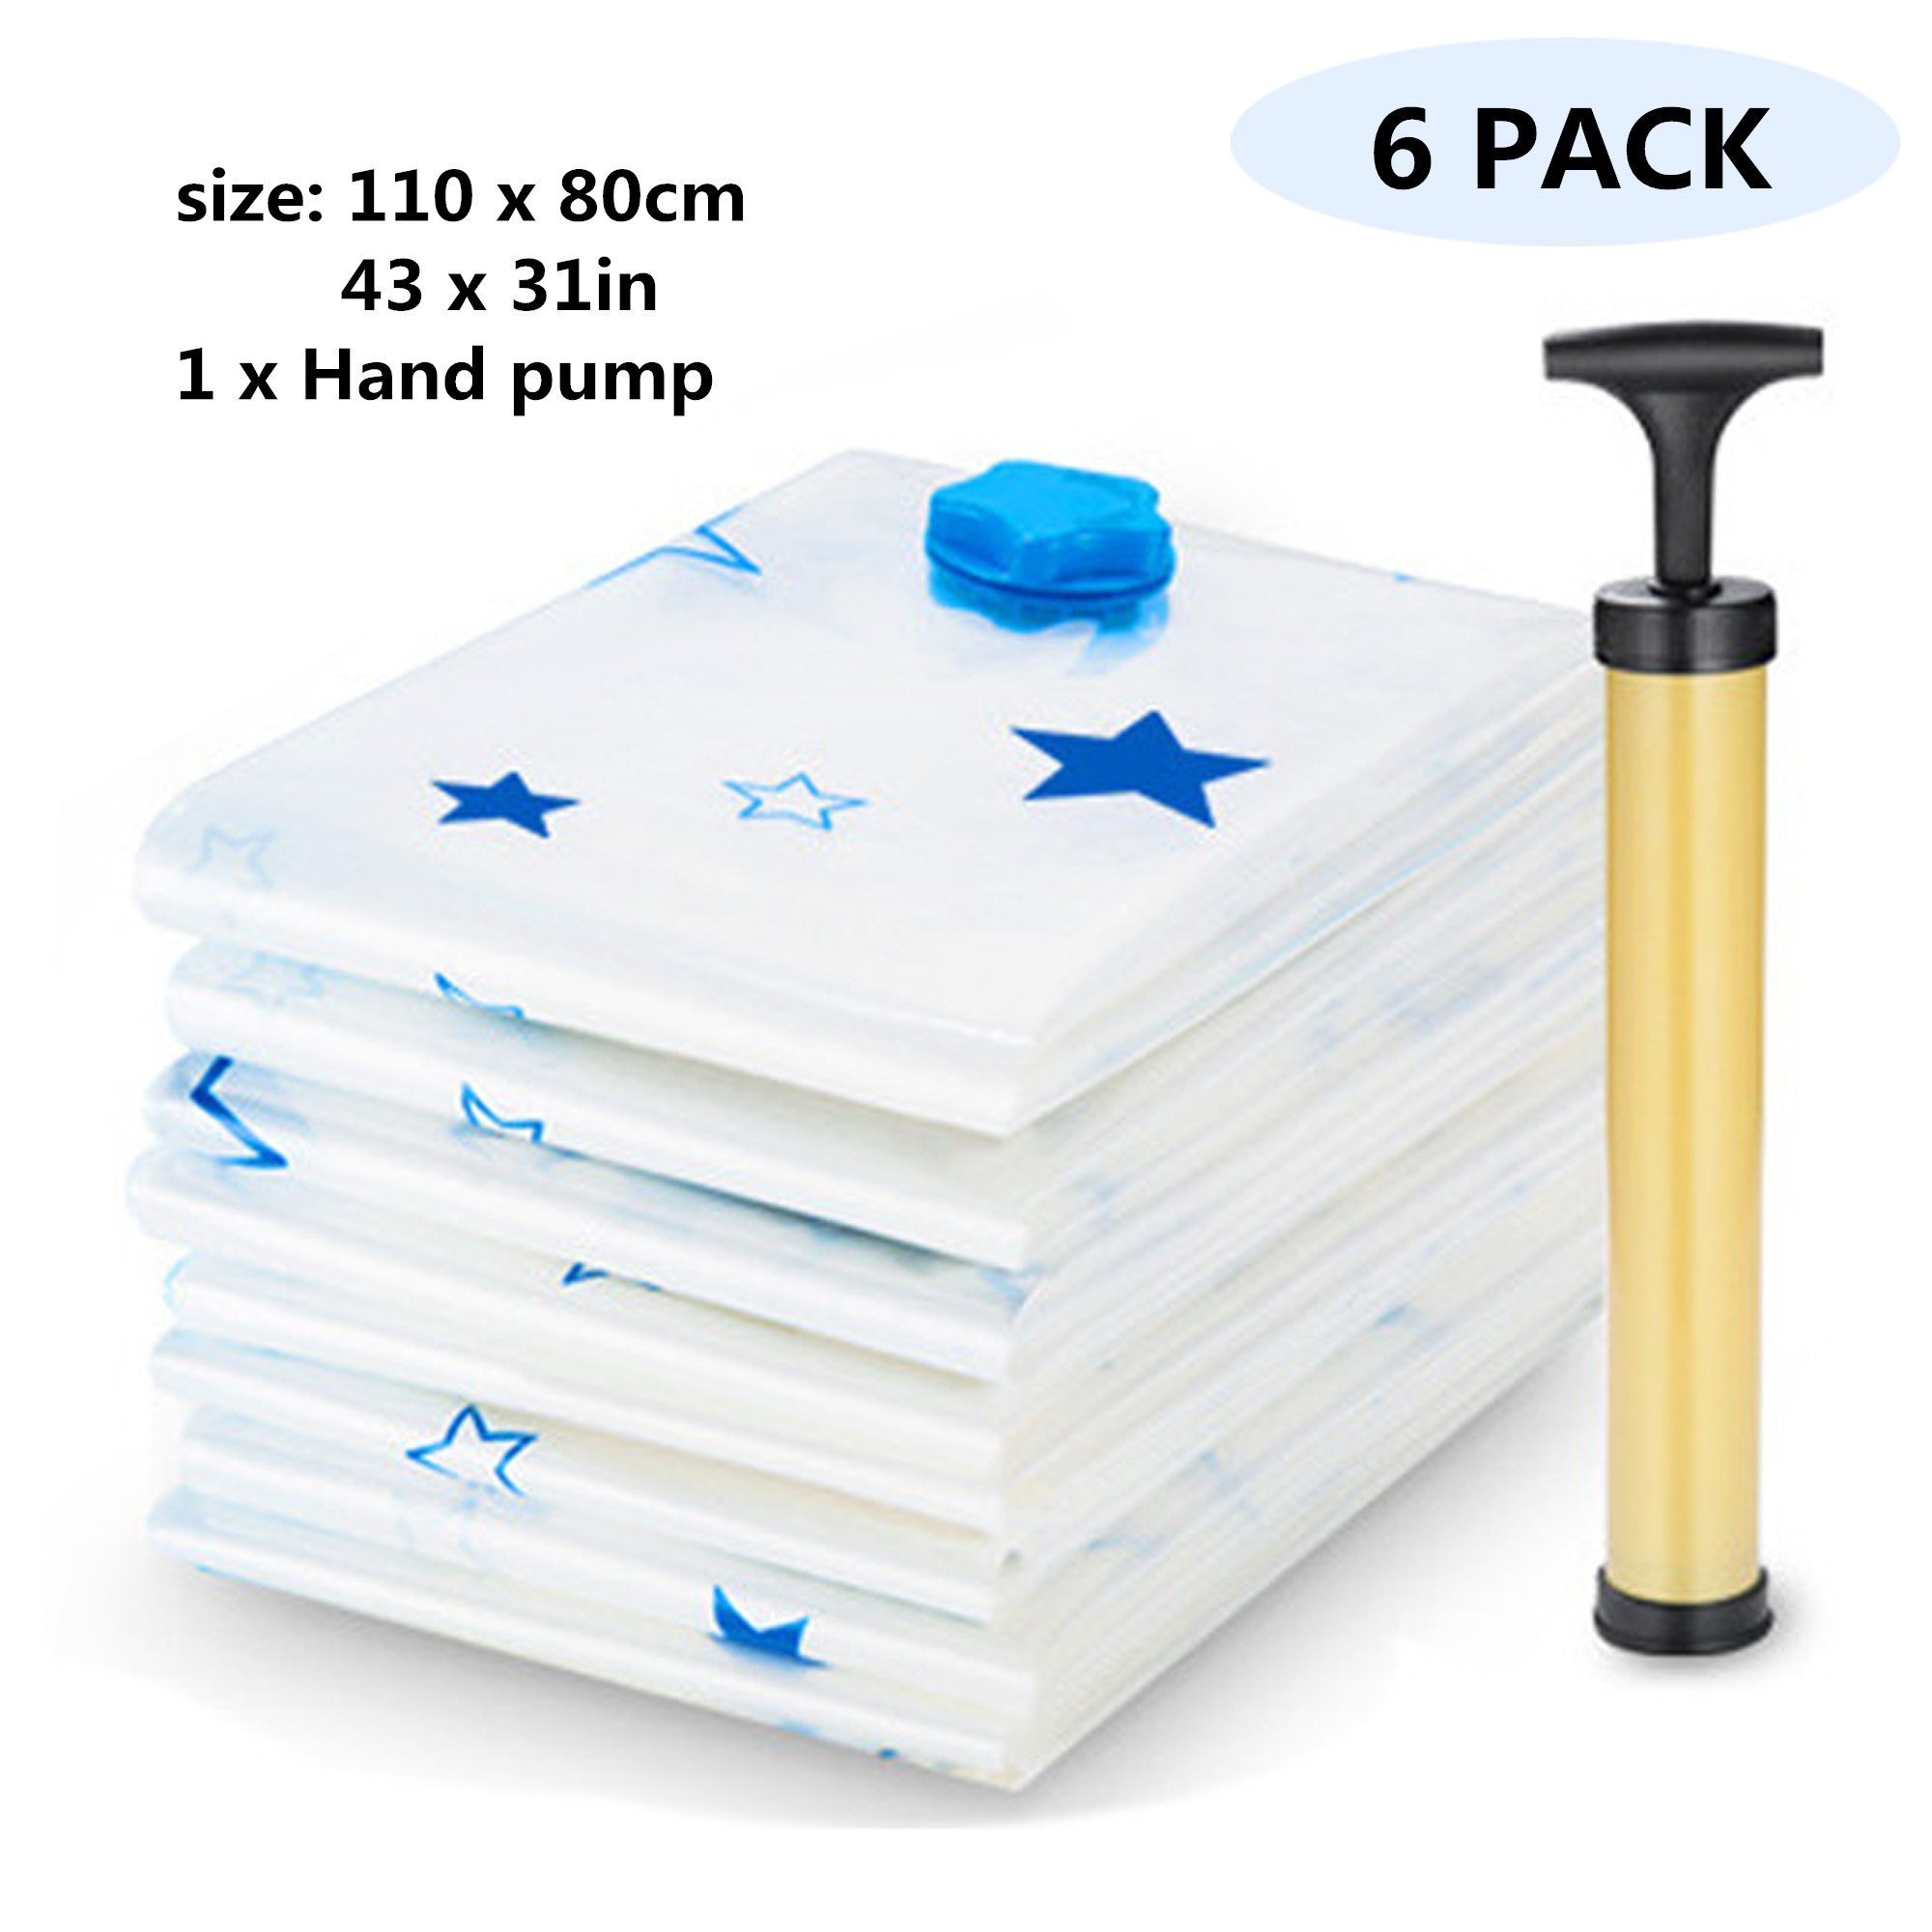 UNIAI Strong Vacuum Storage Bags 6 Pack(43x31in/110x80cm),Space Saver Bags Reusable Vacuum Seal Bags for Clothes,Duvets,Bedding and Travel Packing